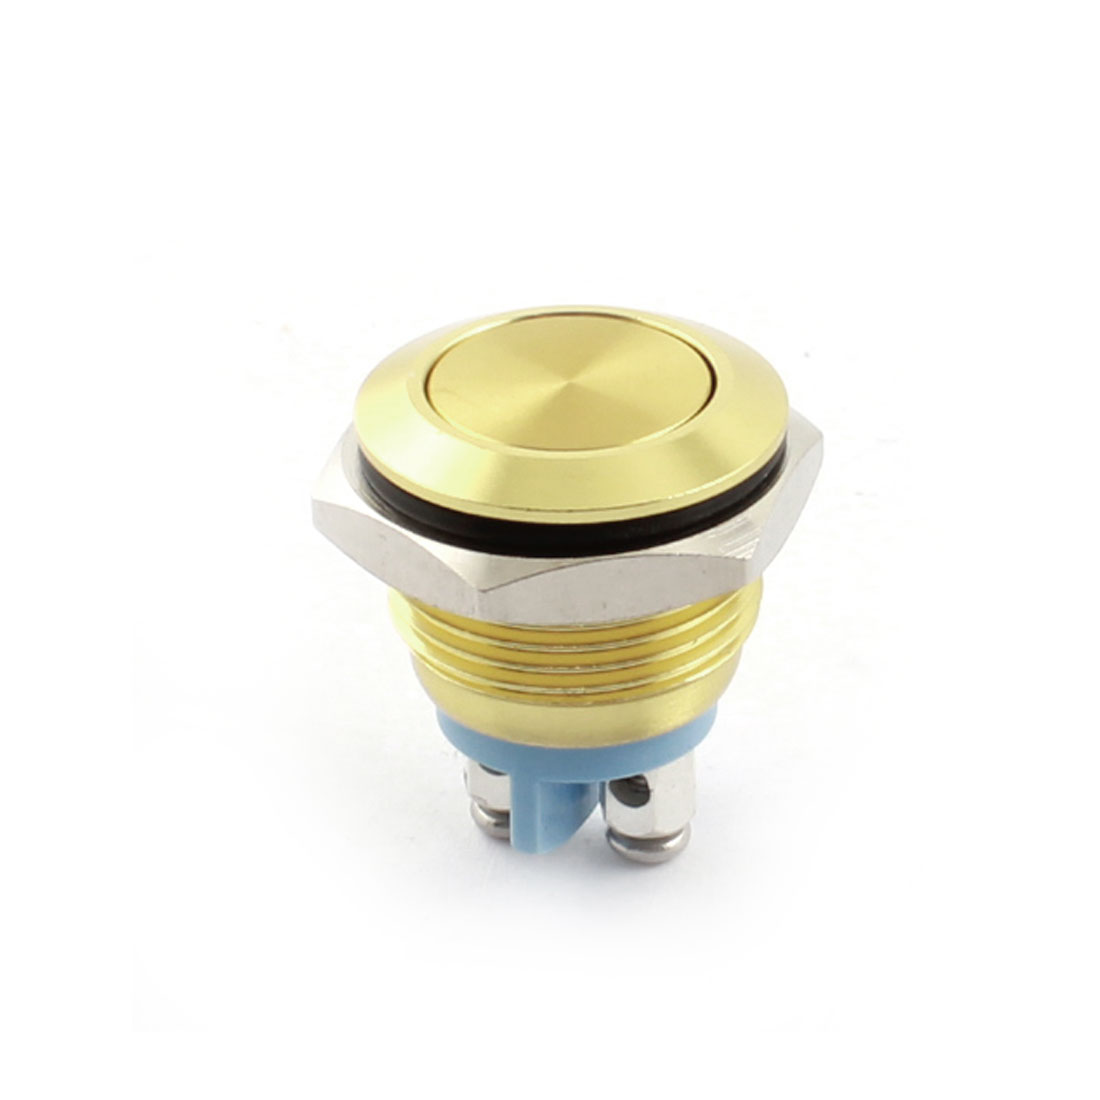 250V 3A 16mm Panel Mount SPST Momentary Metal Push Button Switch Yellow - image 2 of 2